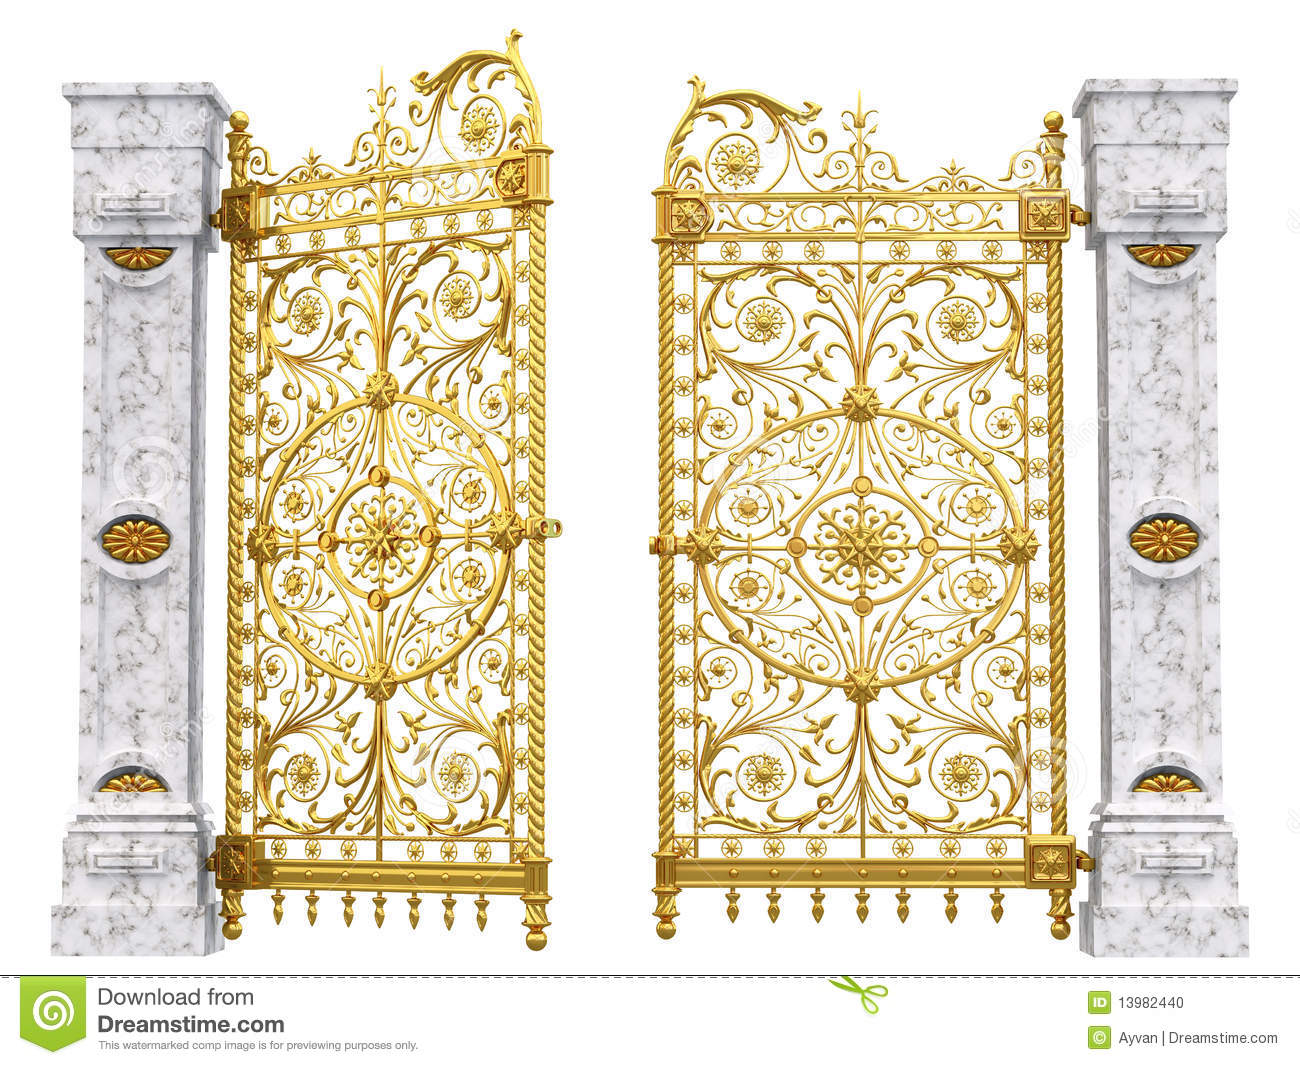 Pearly Gates Of Heaven Clipart Pearly Gates Of Heaven